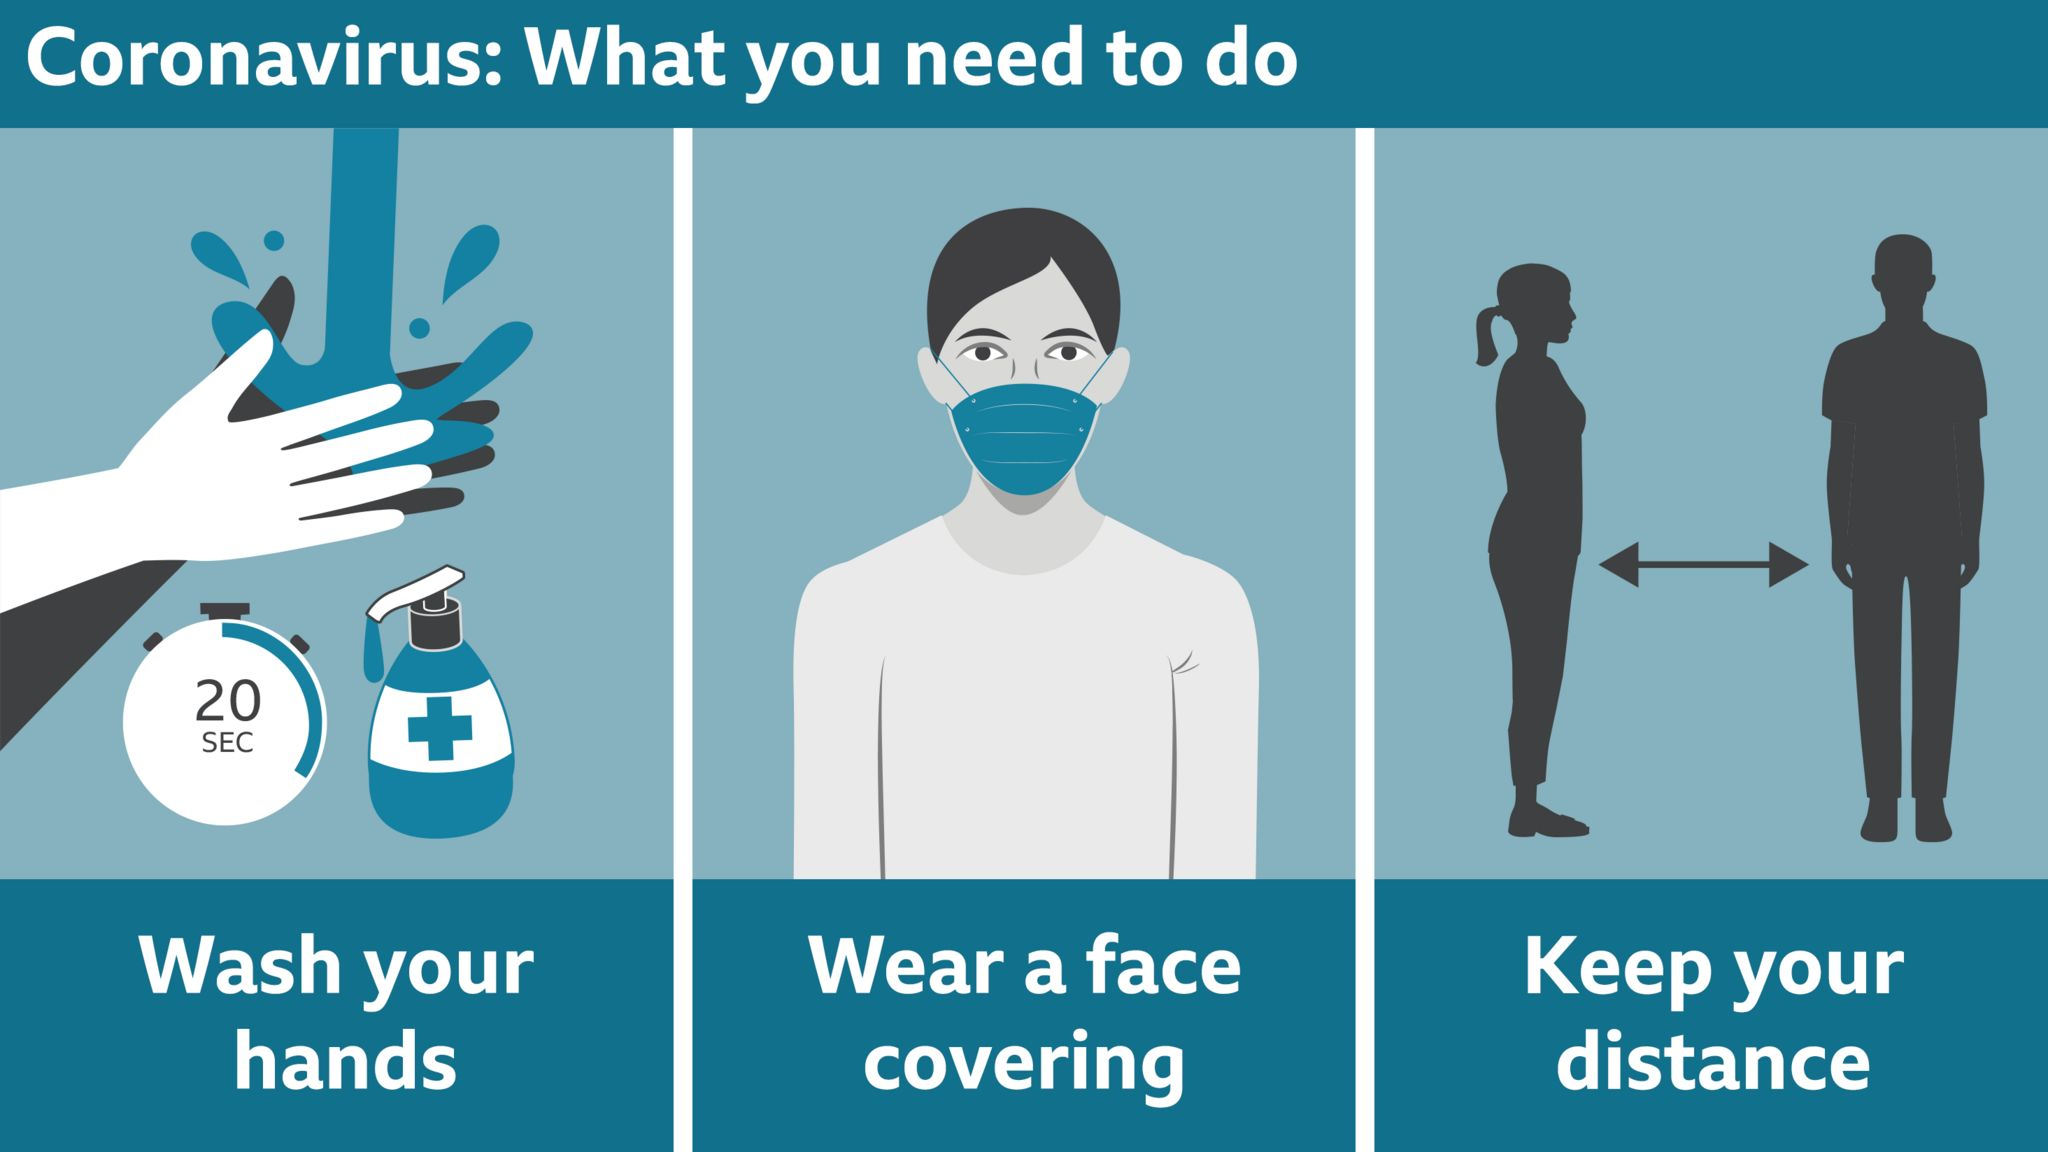 Three key instructions: Wash your hands. Wear face covering. Keep your distance.